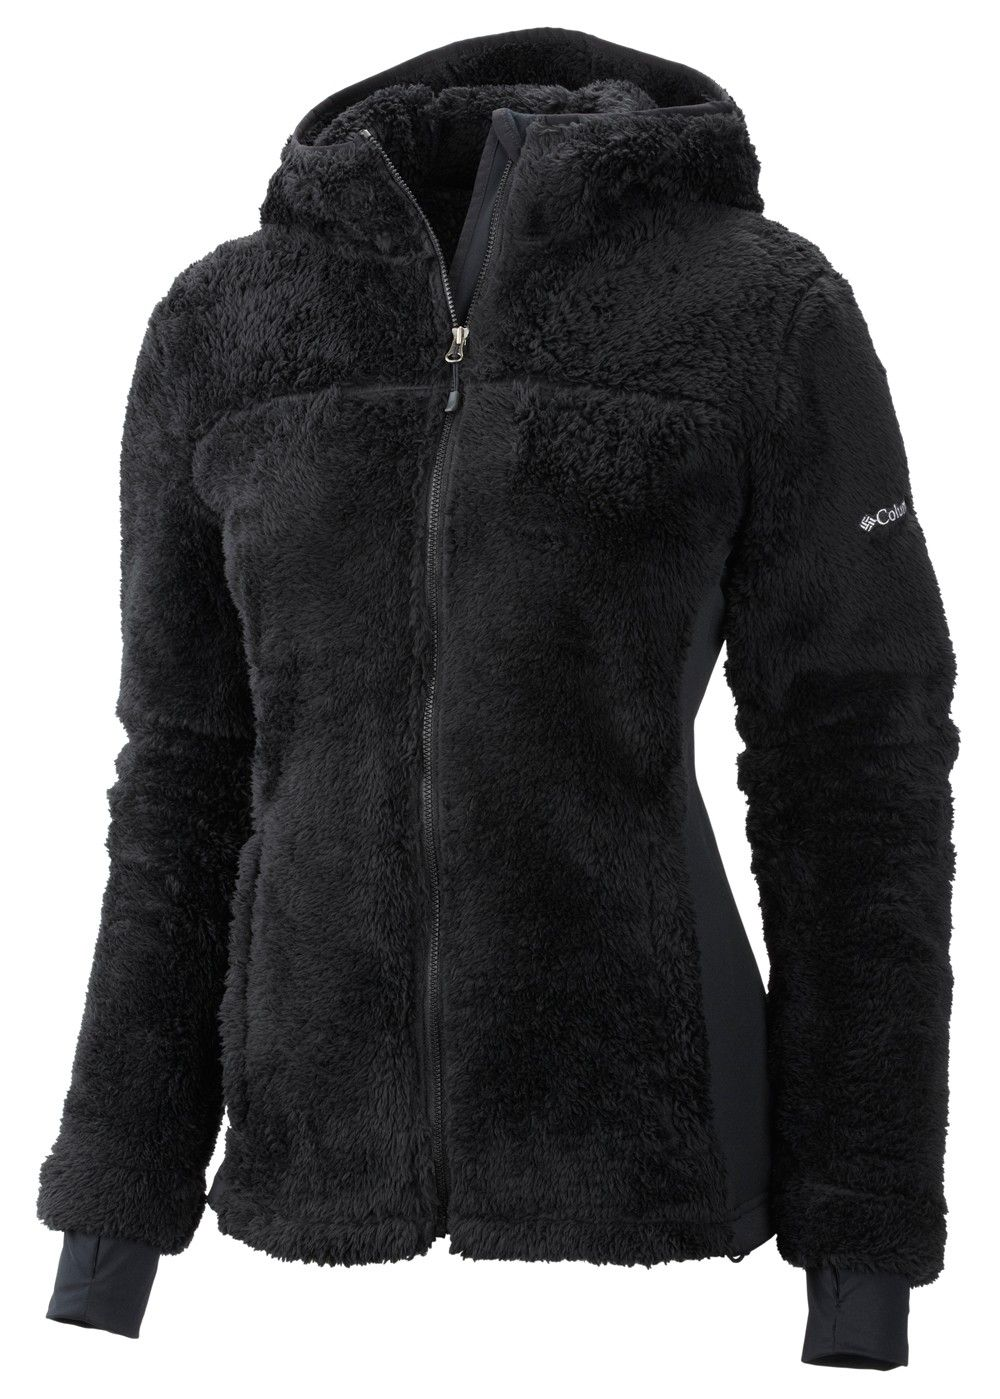 Columbia Women's Polar Yeti Plush Fleece Jacket (Black) | Women's ...